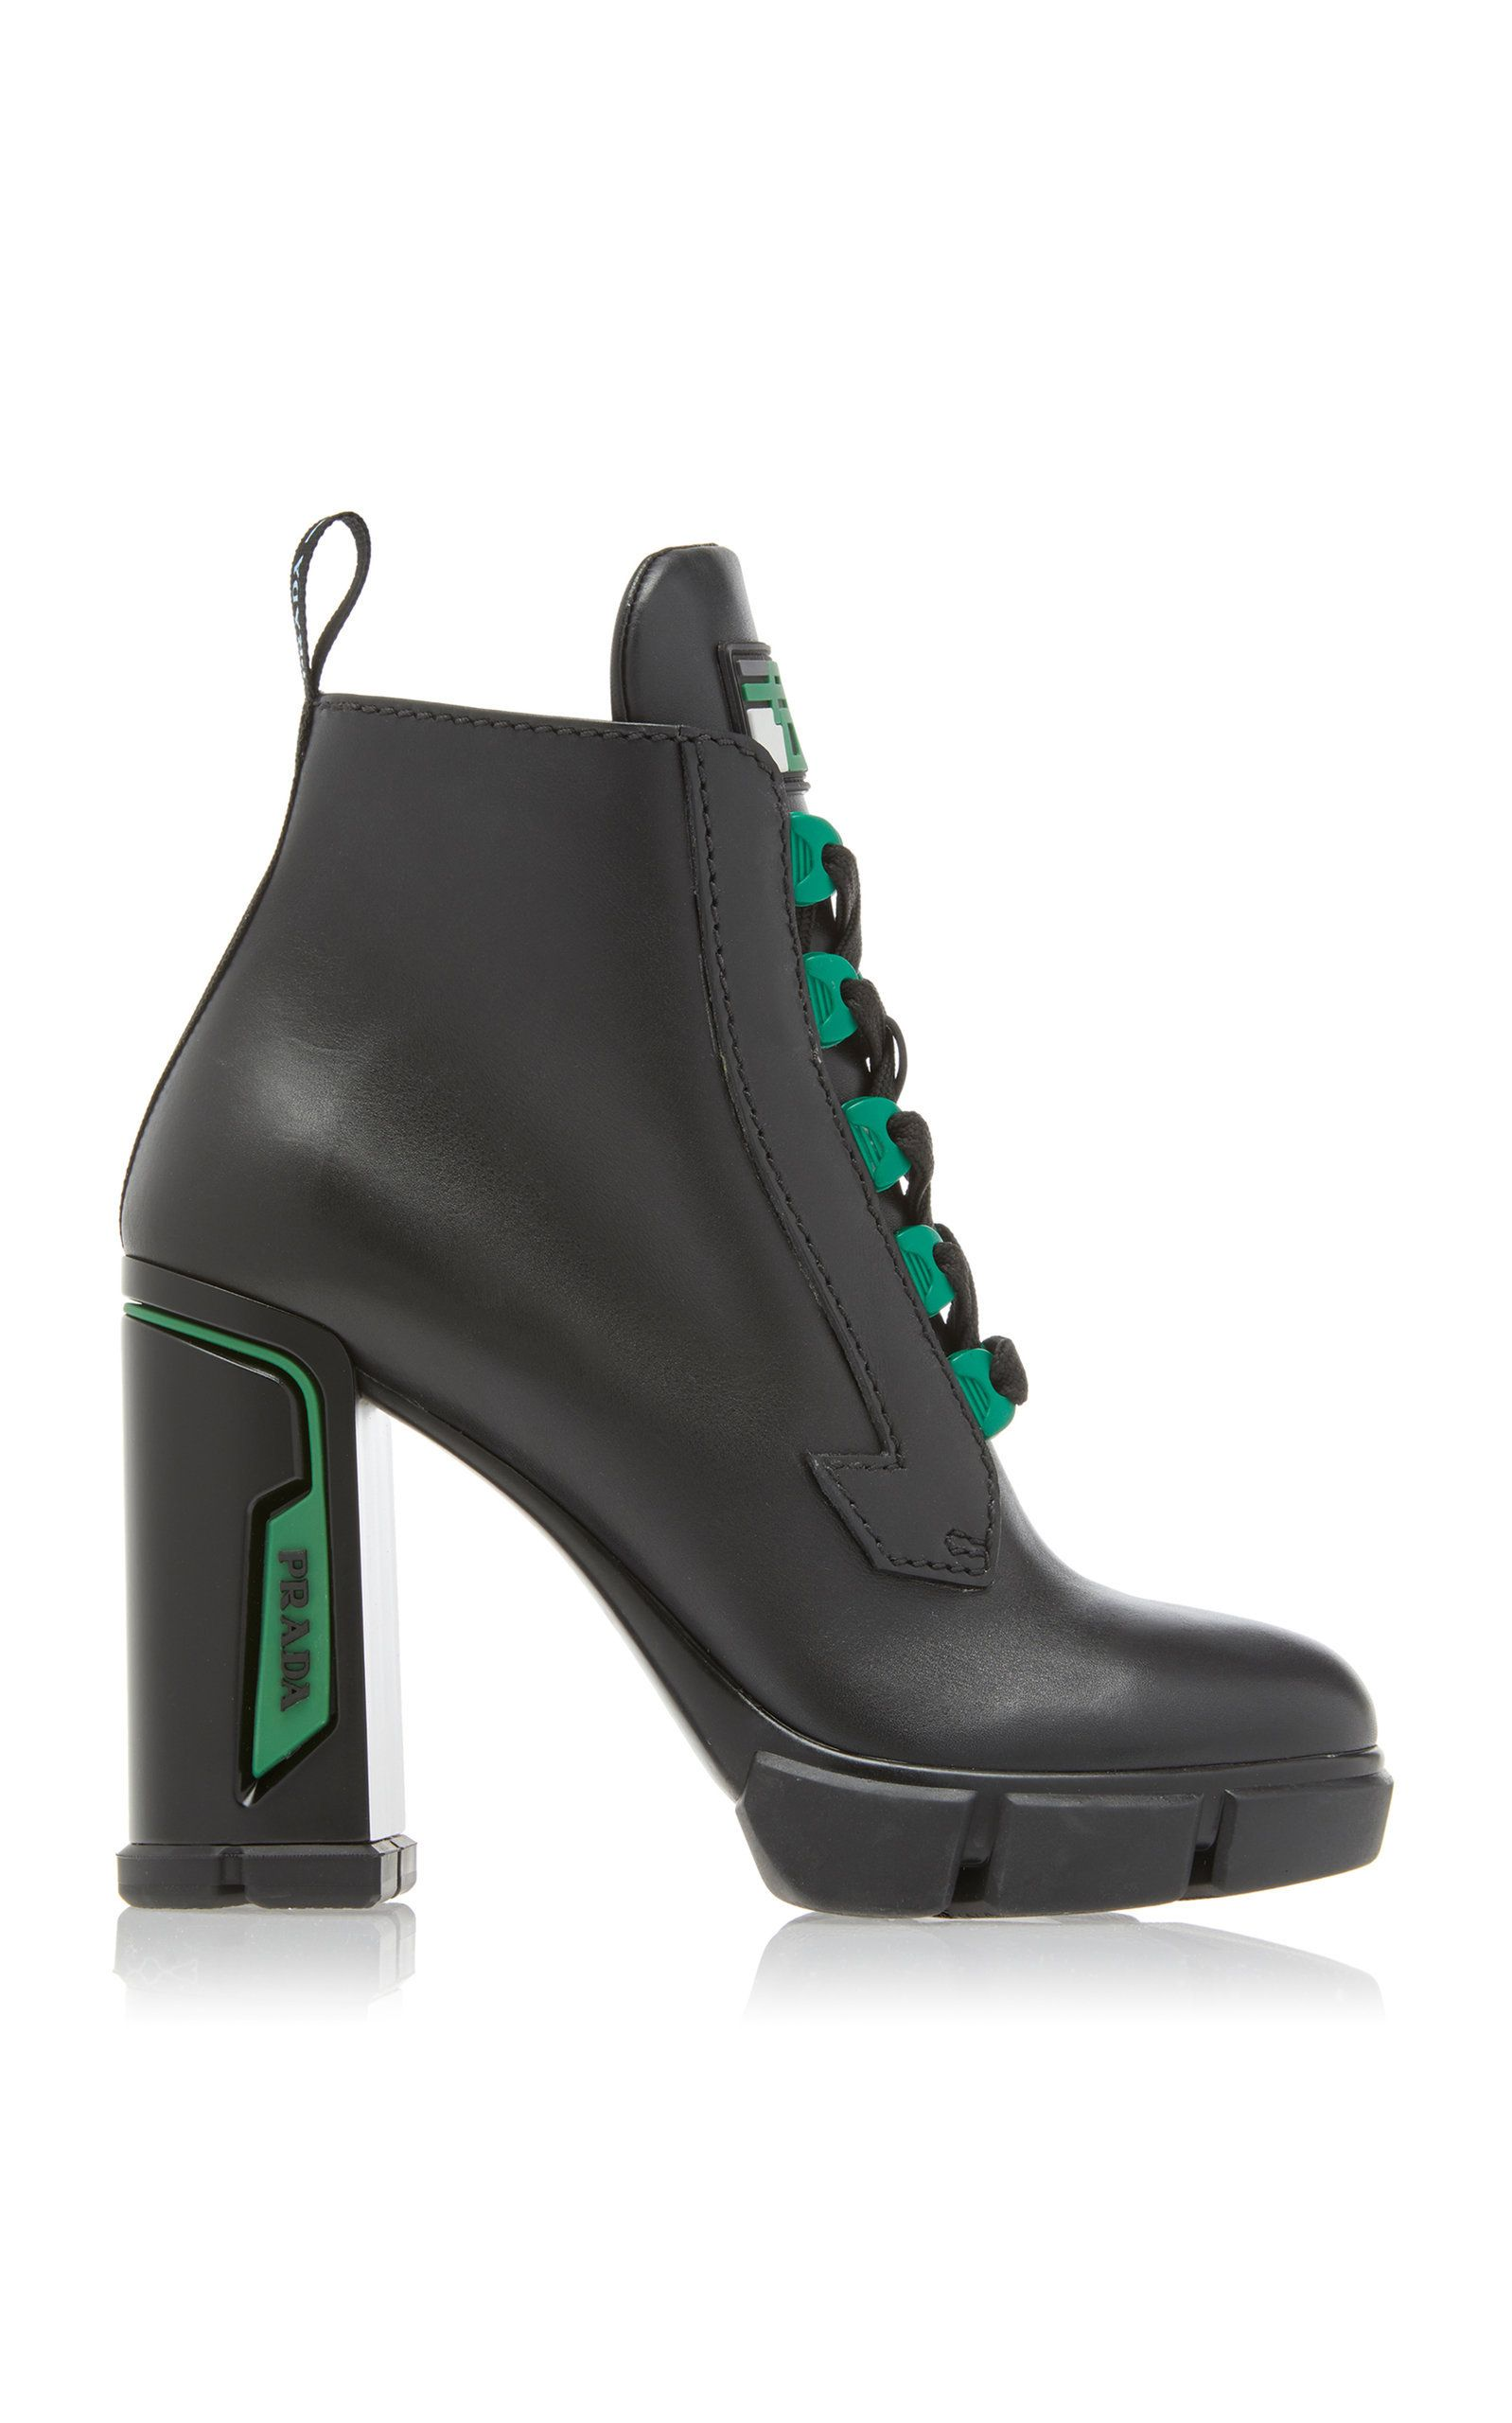 be7382d10fa Tronchetti Leather Ankle Boots by PRADA Now Available on Moda Operandi